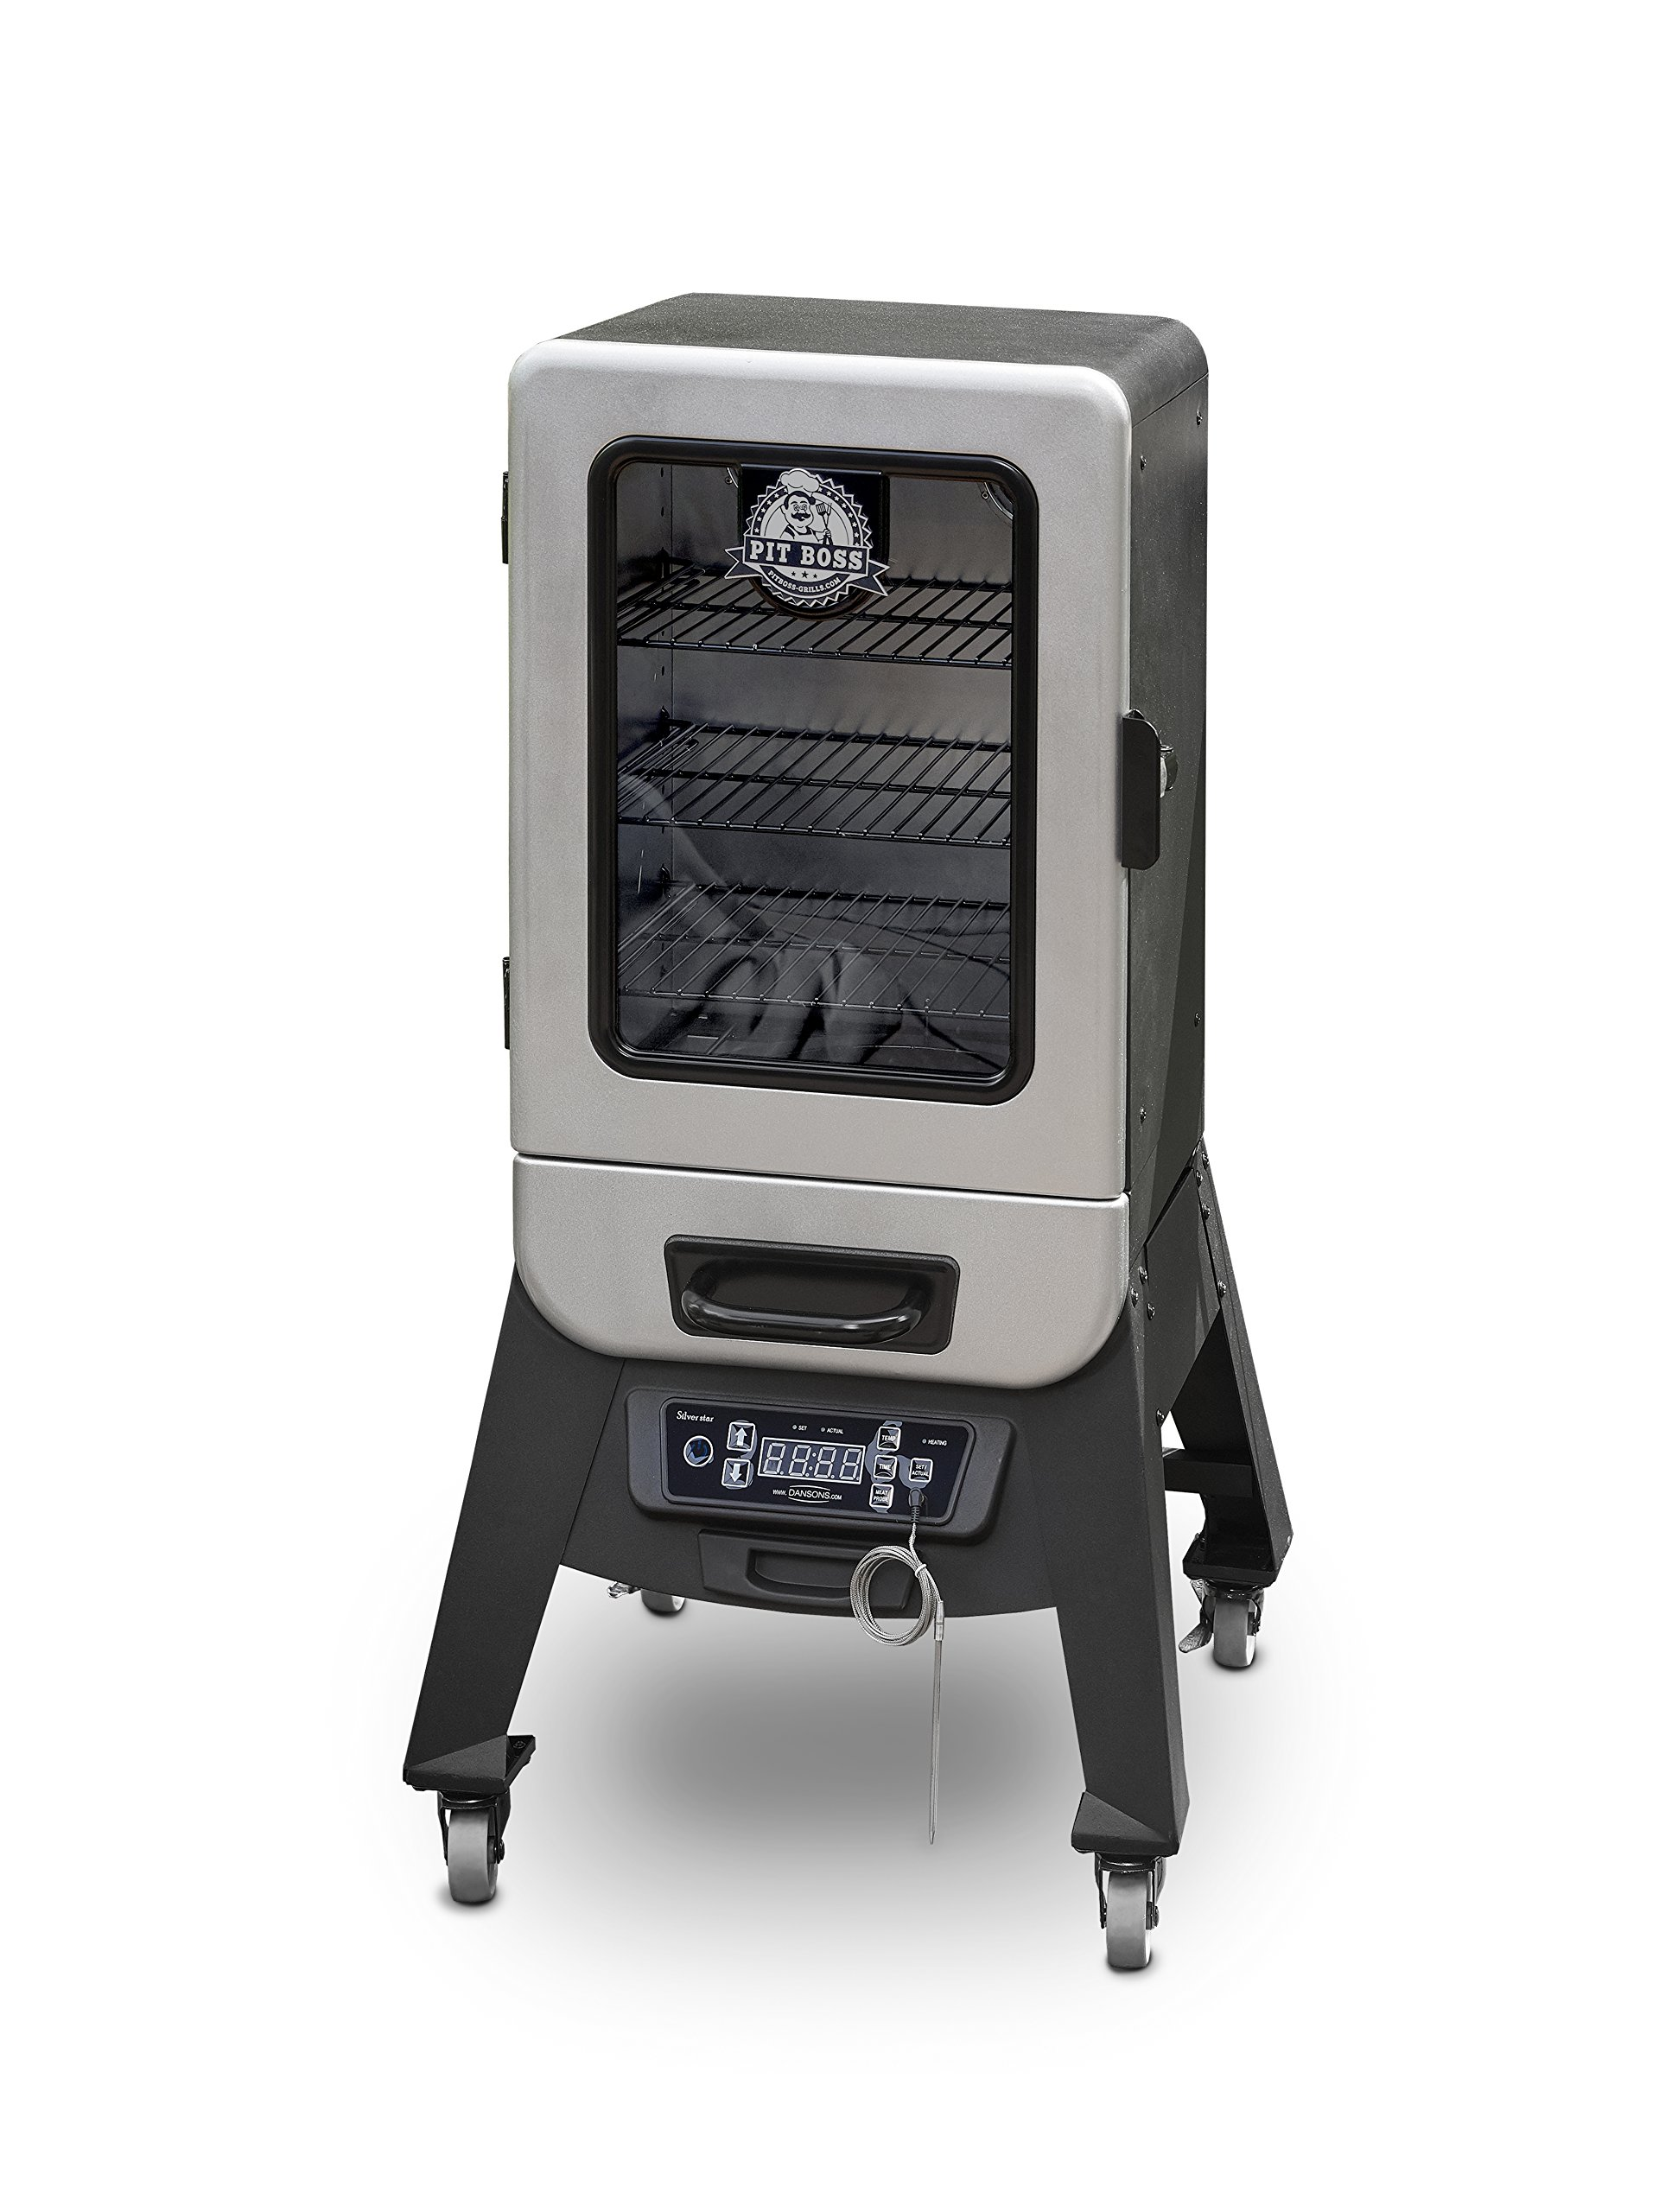 Pit Boss Grills 77221 2.2 Digital Smoker by Pit Boss Grills